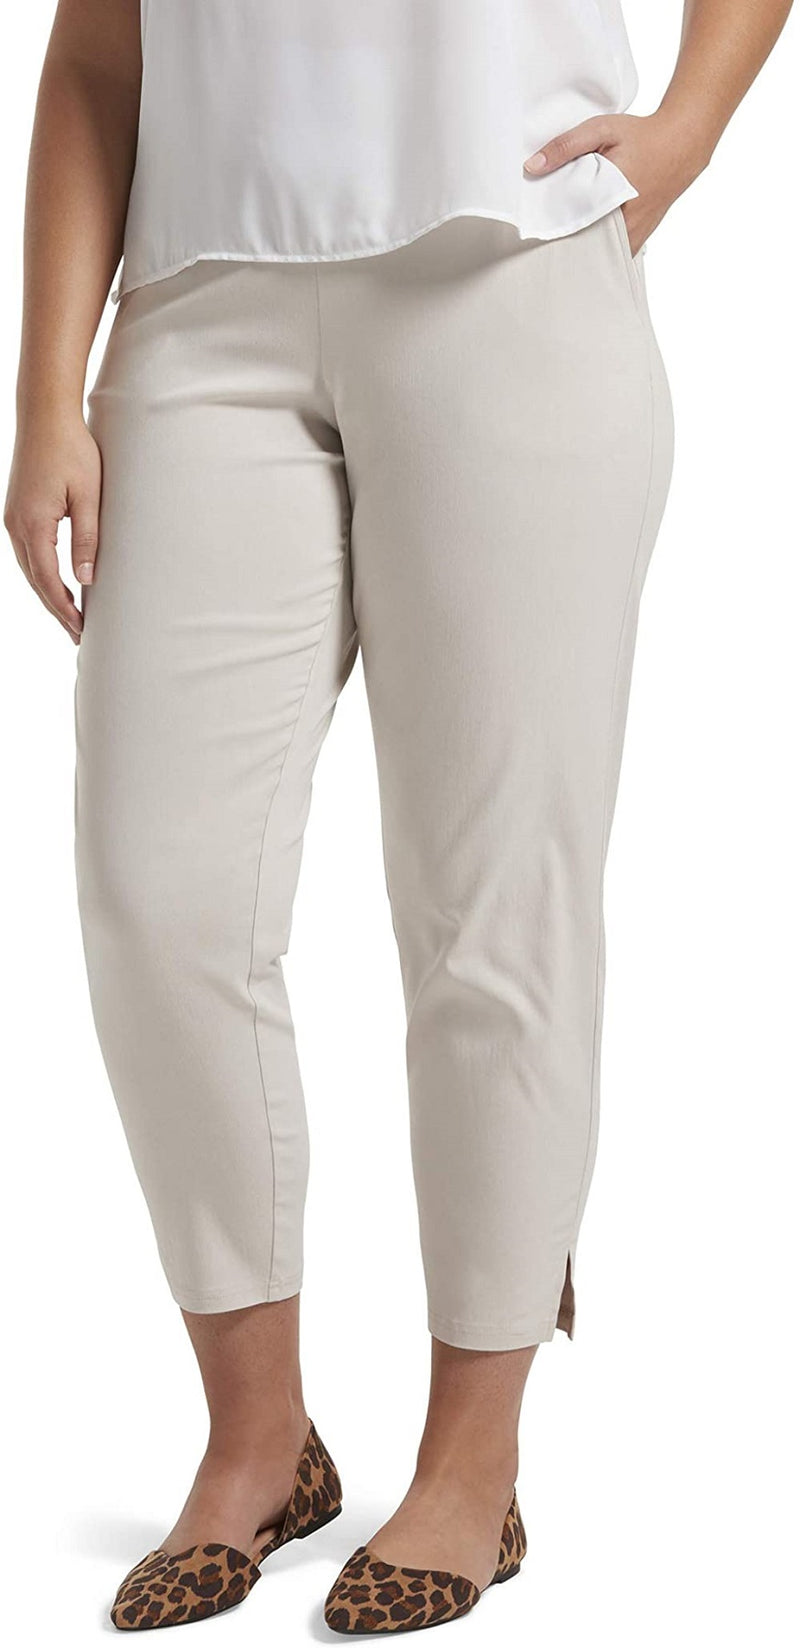 HUE Temp Tech Pull On Closure Comfortable Women's Texh Trouser Leggings, 2X, Wind Chime